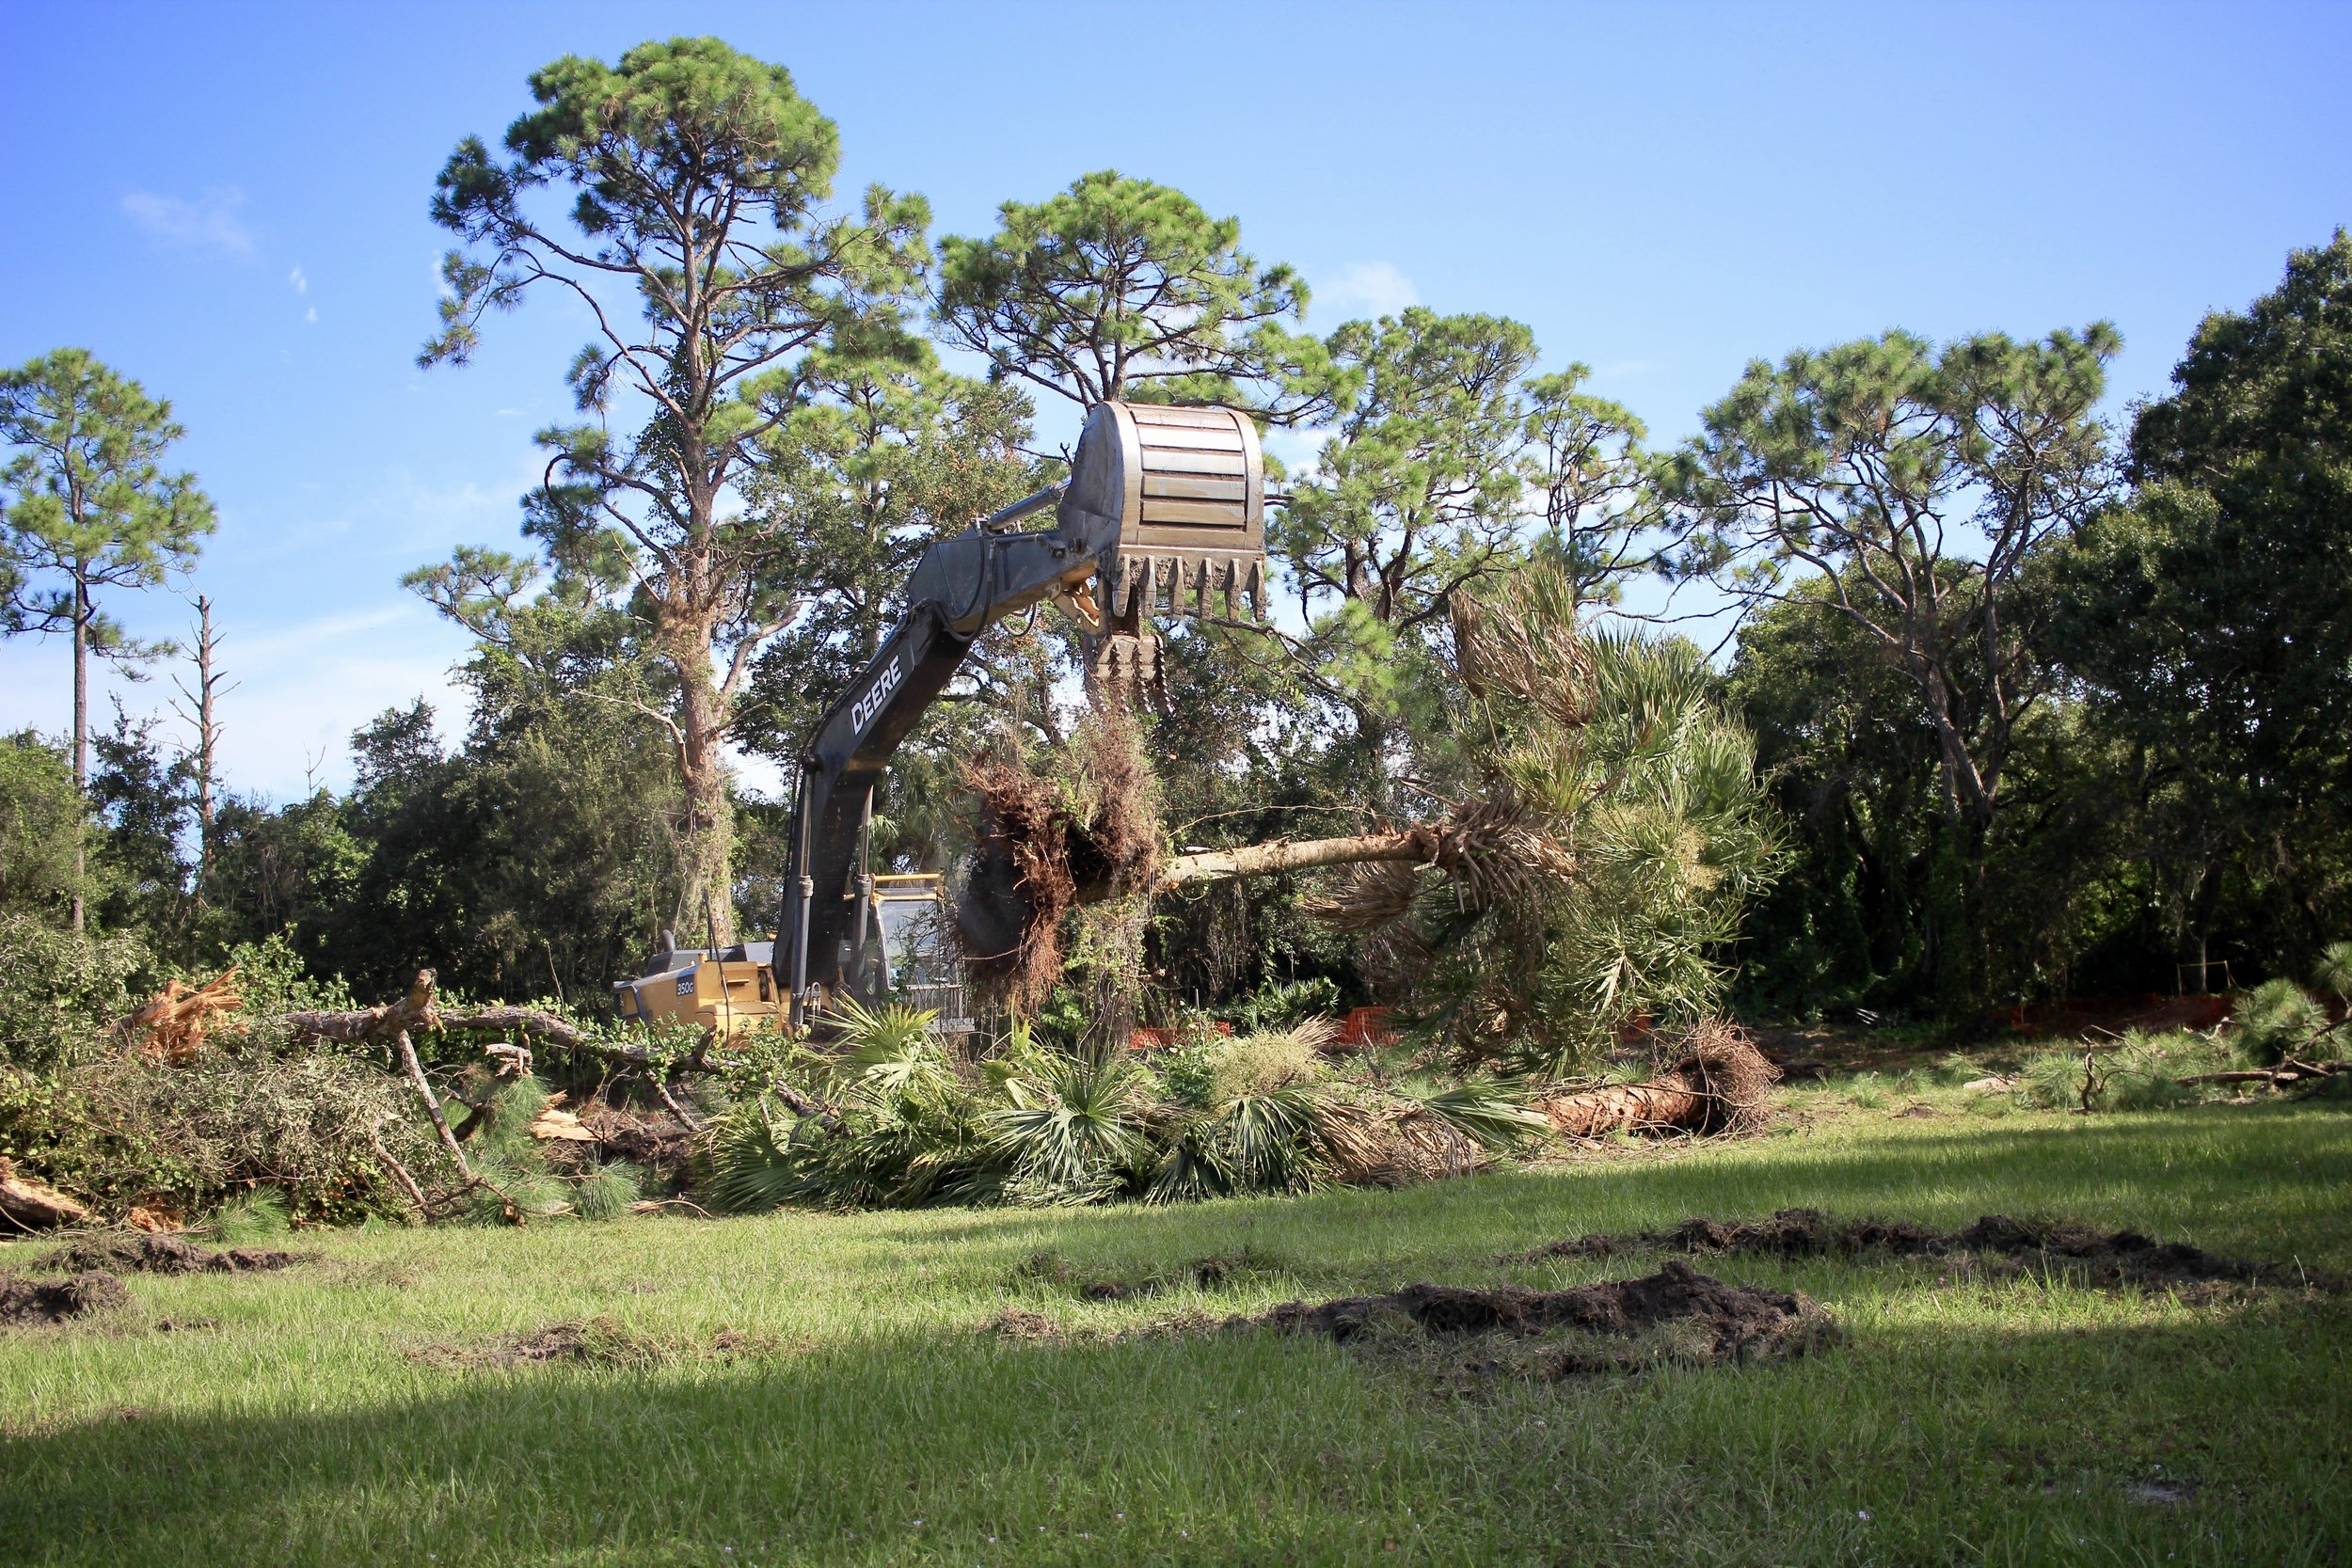 An excavator drops a palm tree into a brush pile.